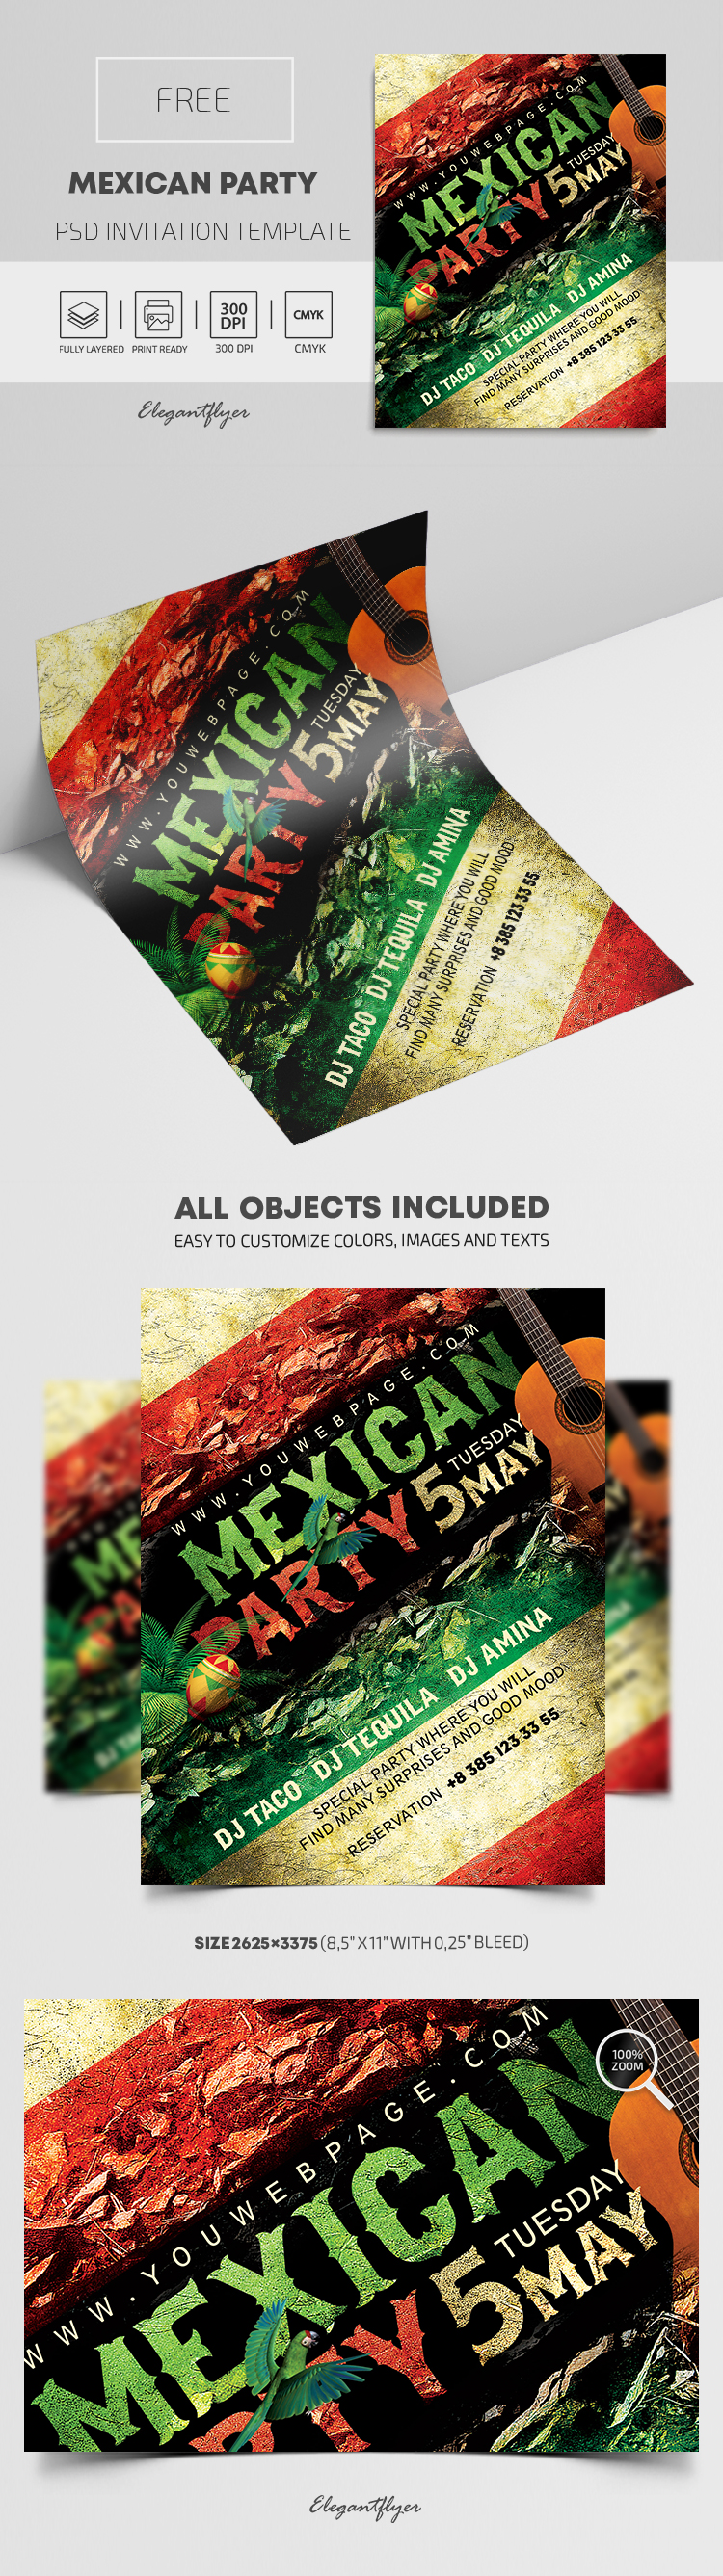 Mexican Party – Free PSD Invitation Template